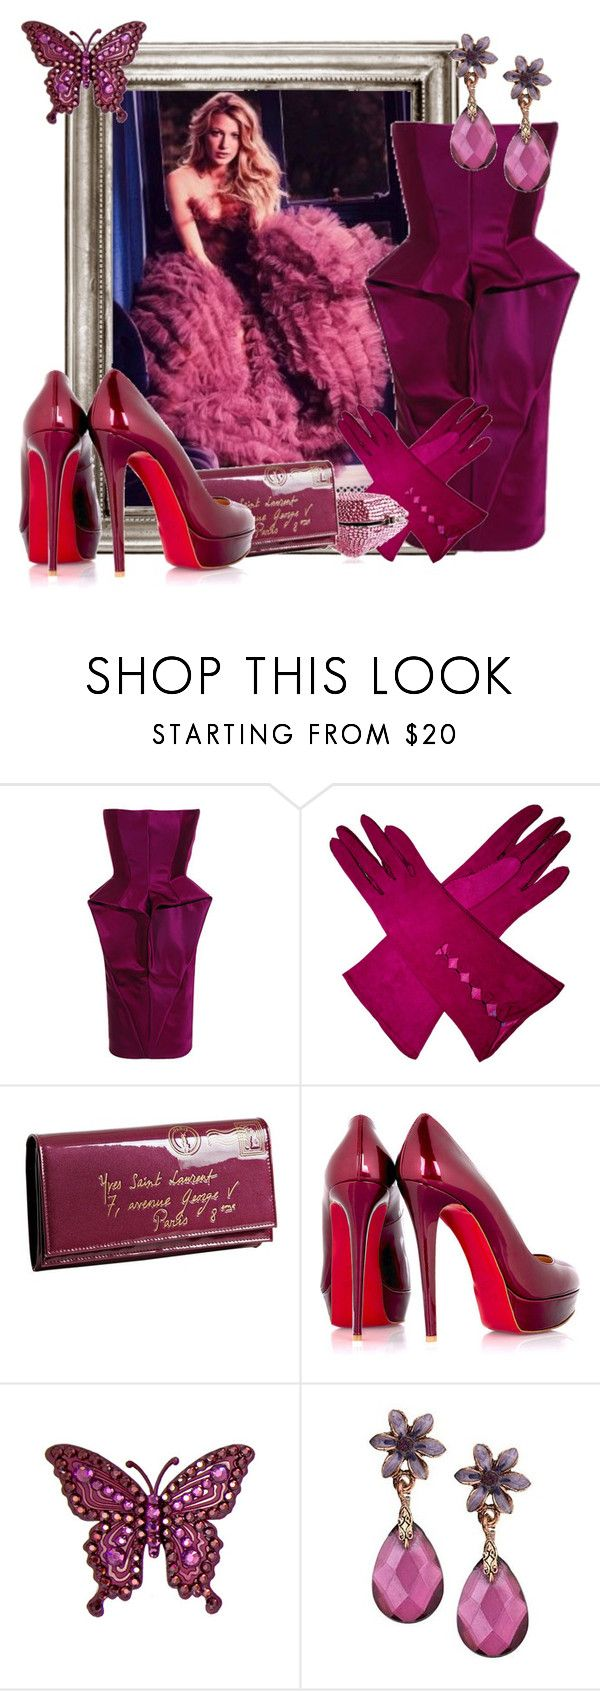 """18. Blake Lively ""What are you dining with the Queen??? - Agyness. THS"" by rjl1 ❤ liked on Polyvore featuring William Tempest, Leiber, Yves Saint Laurent, Christian Louboutin, Tarina Tarantino, 1928, blake lively, maroon, pumps and ysl"